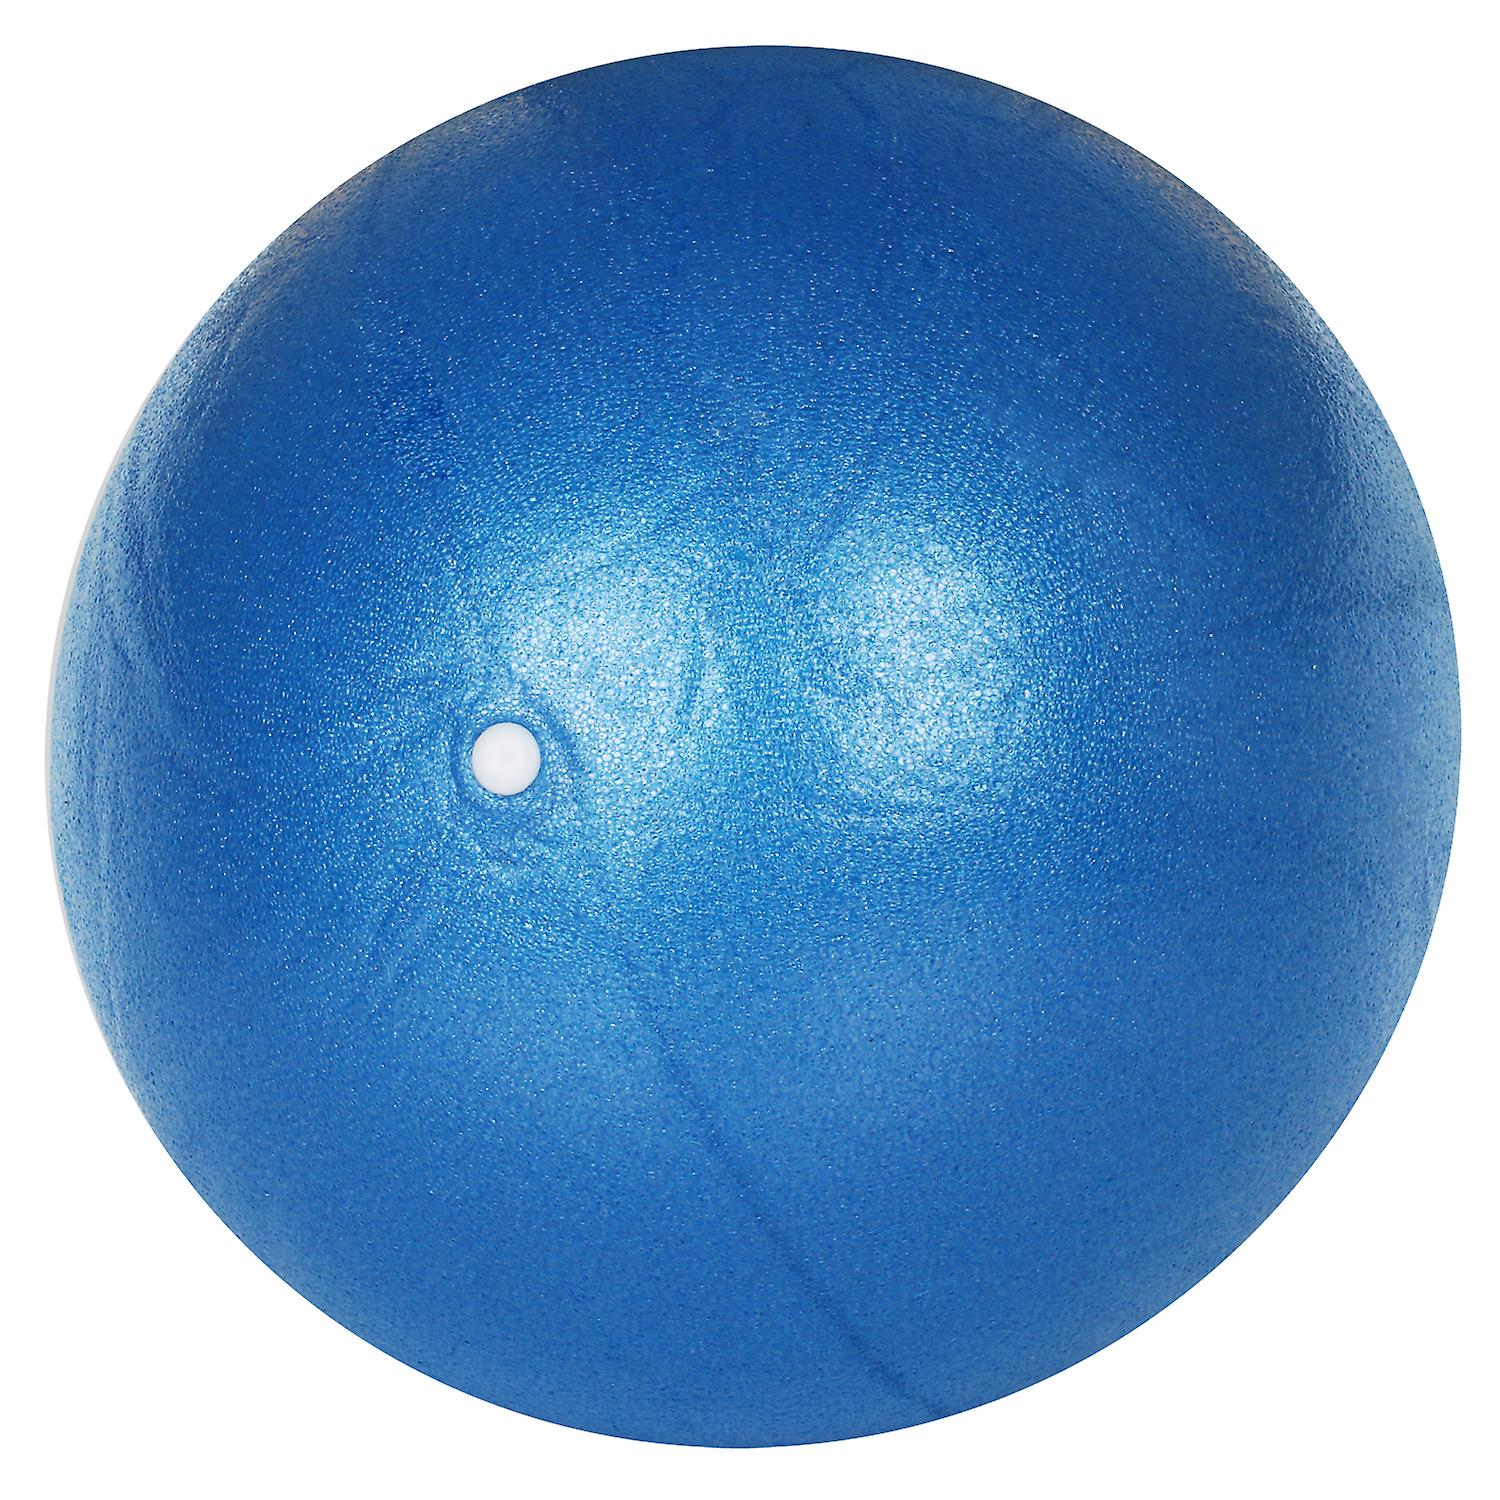 PILATES EXERCISE BALL BLUE